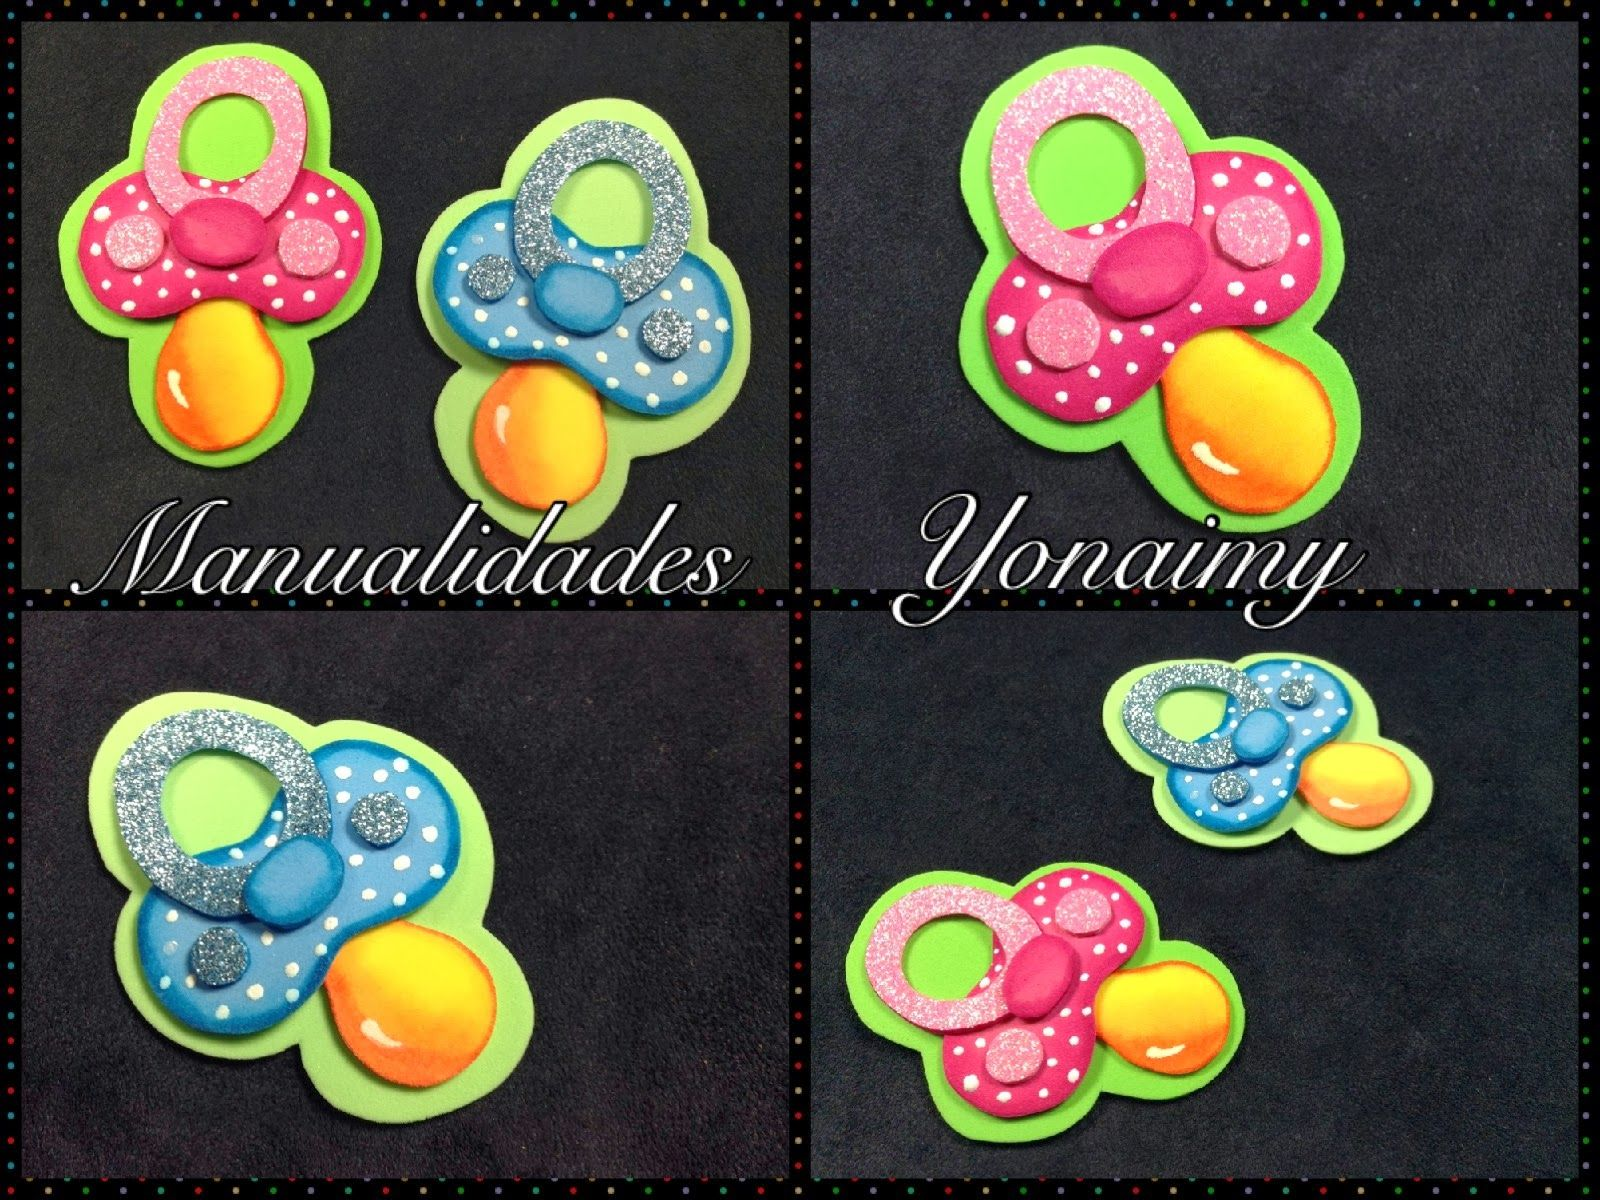 Manualidades yonaimy chupones de bebe para baby shower for Manualidades decoracion bebe